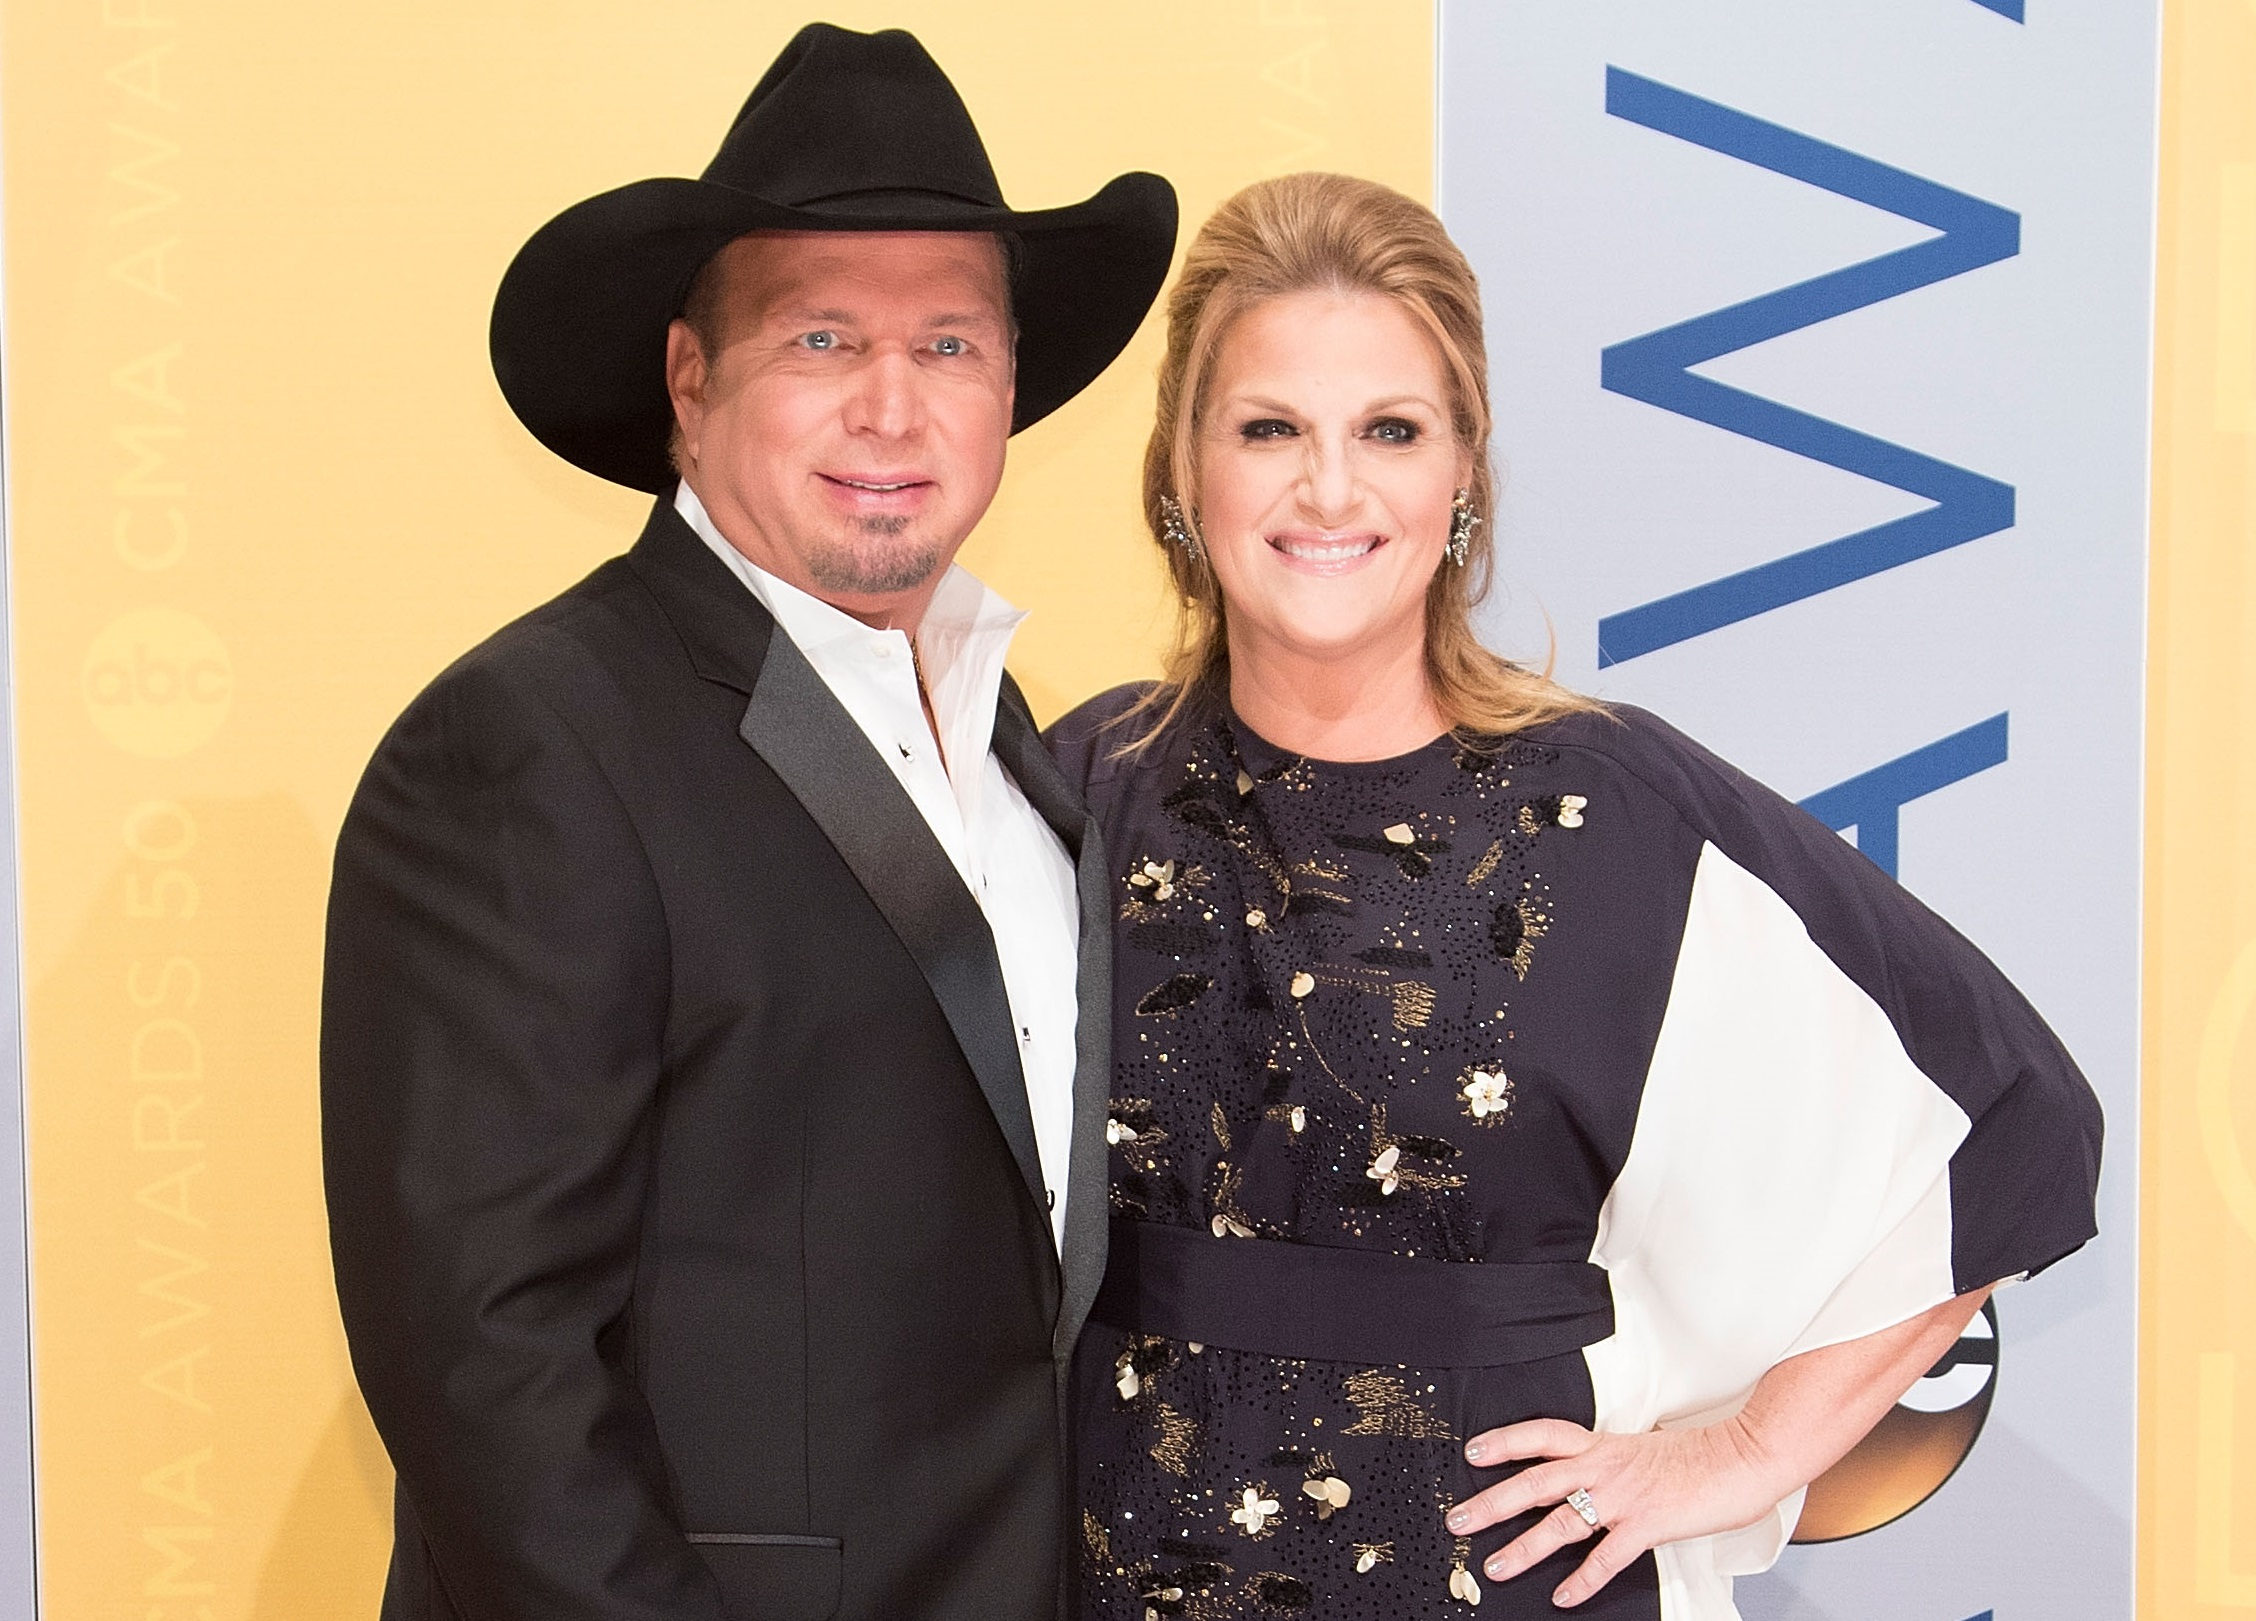 Trisha Yearwood Reflects On Two Special Cma Awards